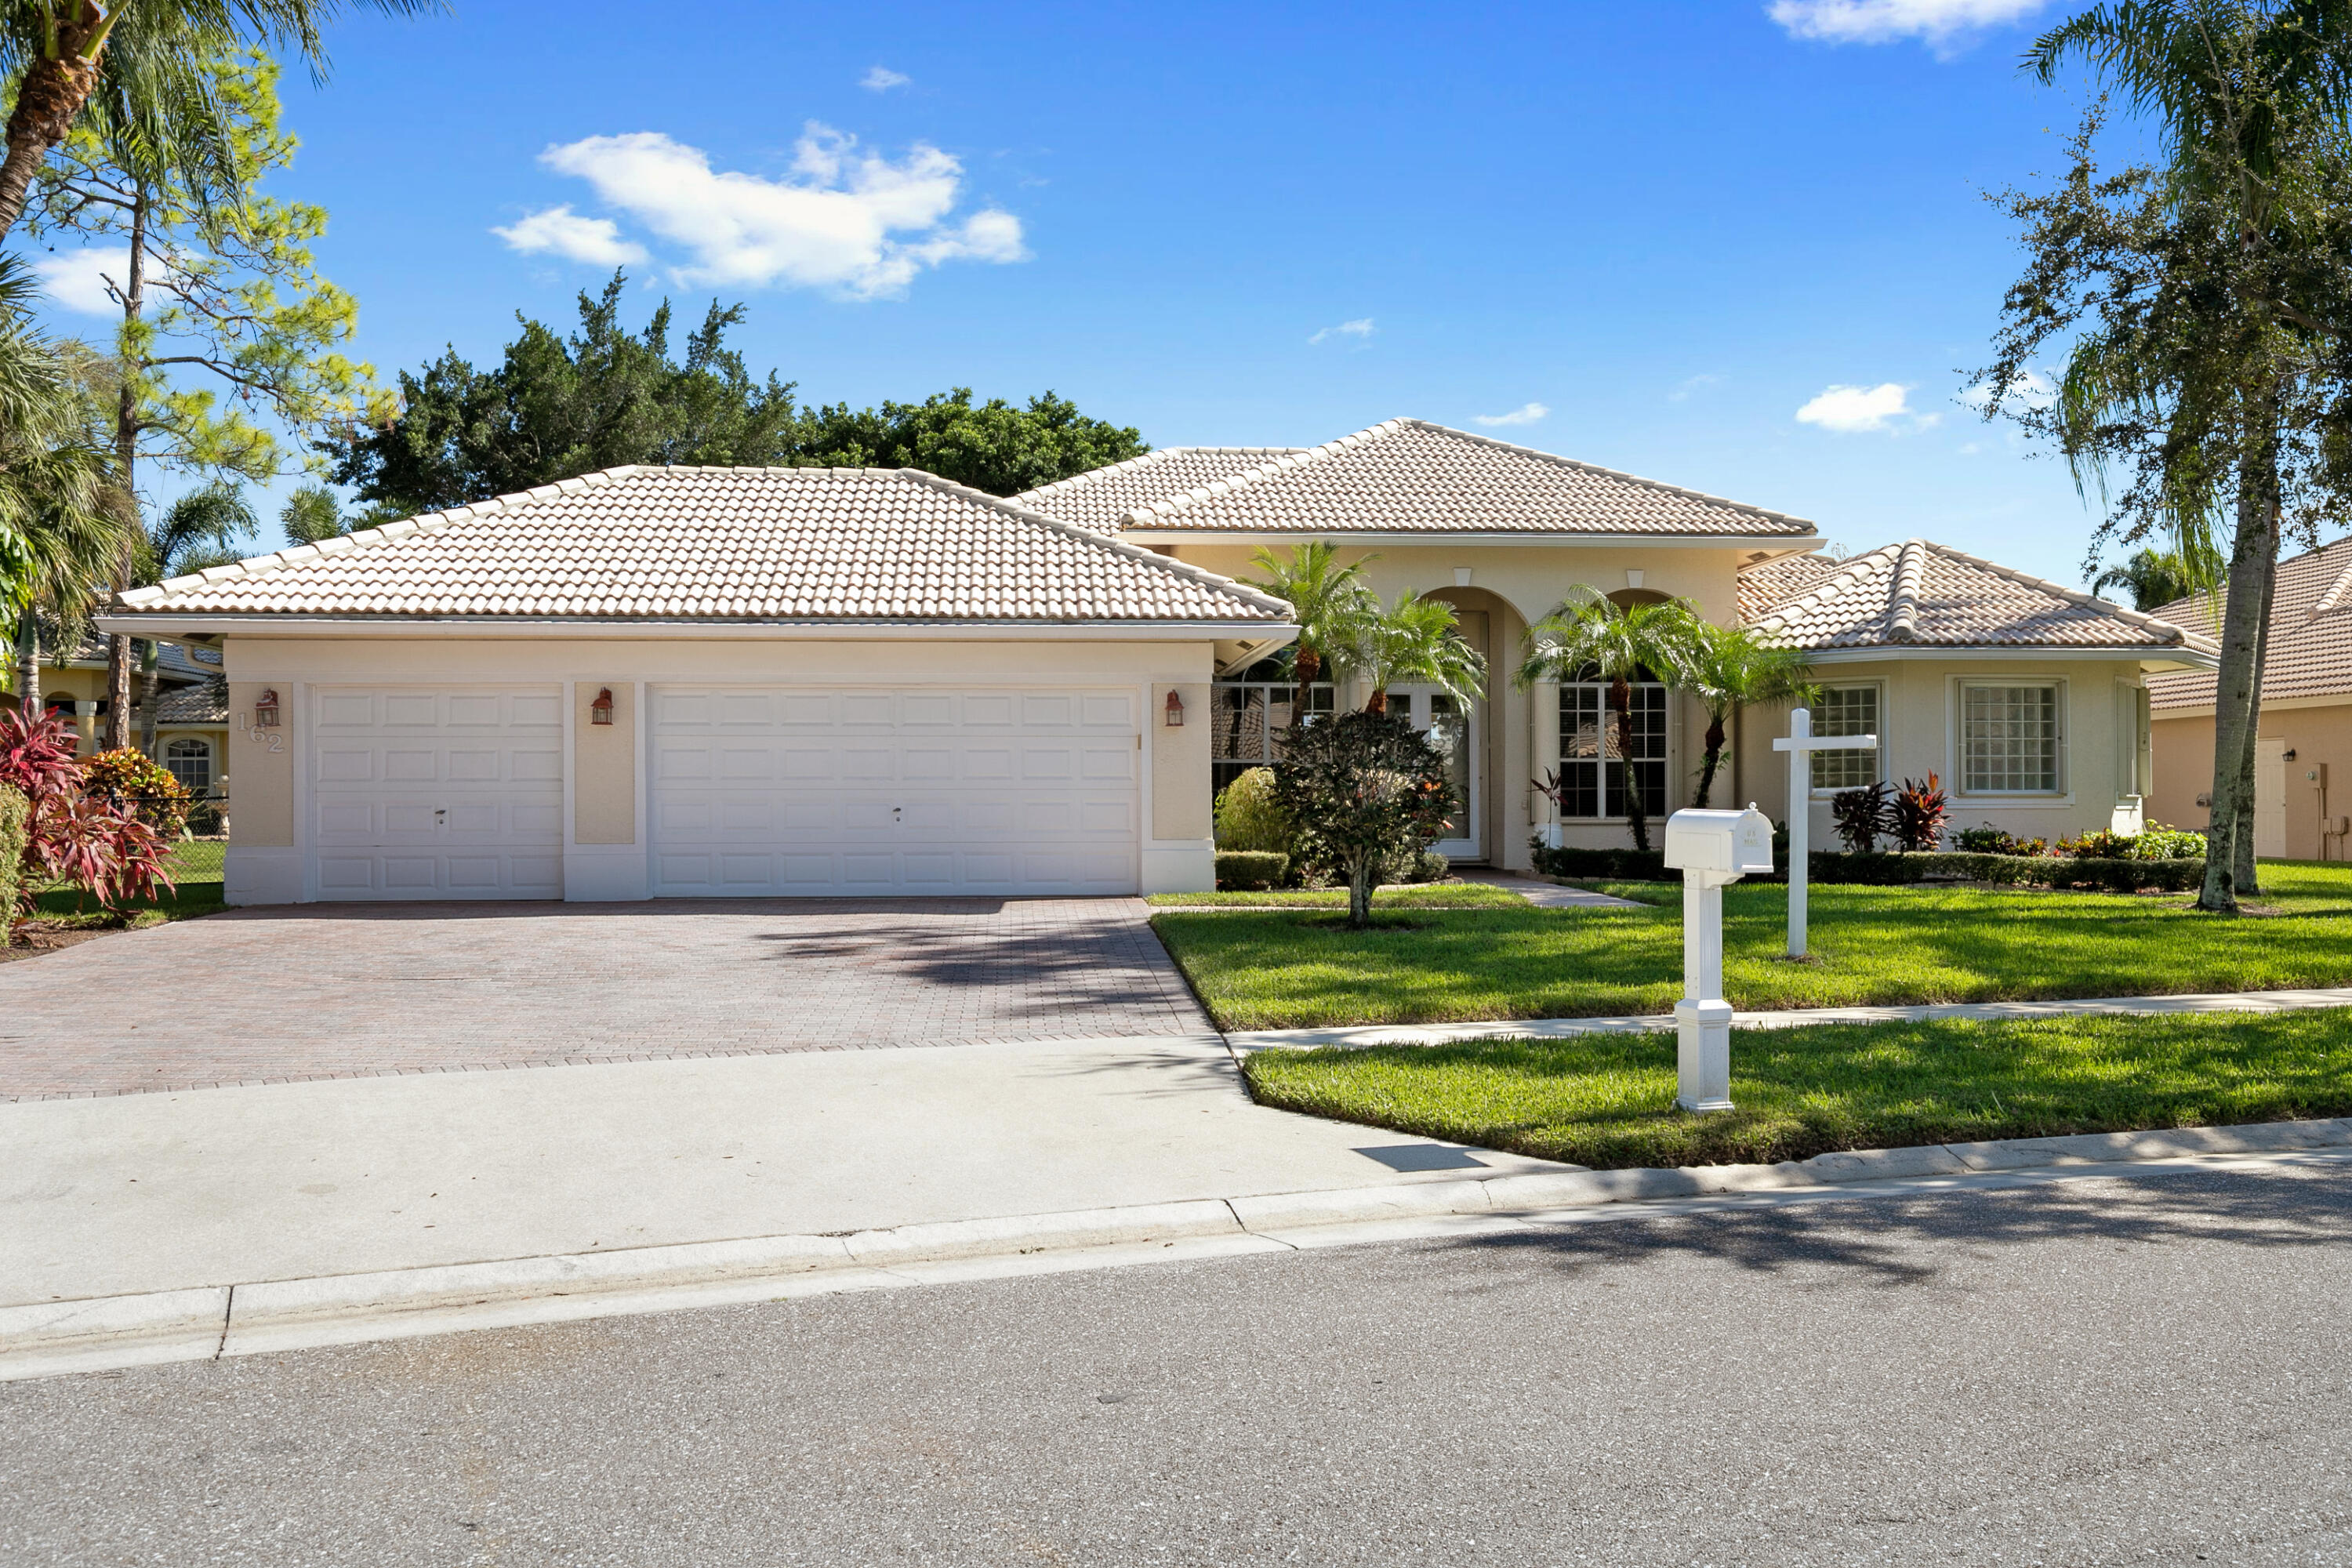 162  Cypress Trace  For Sale 10748794, FL